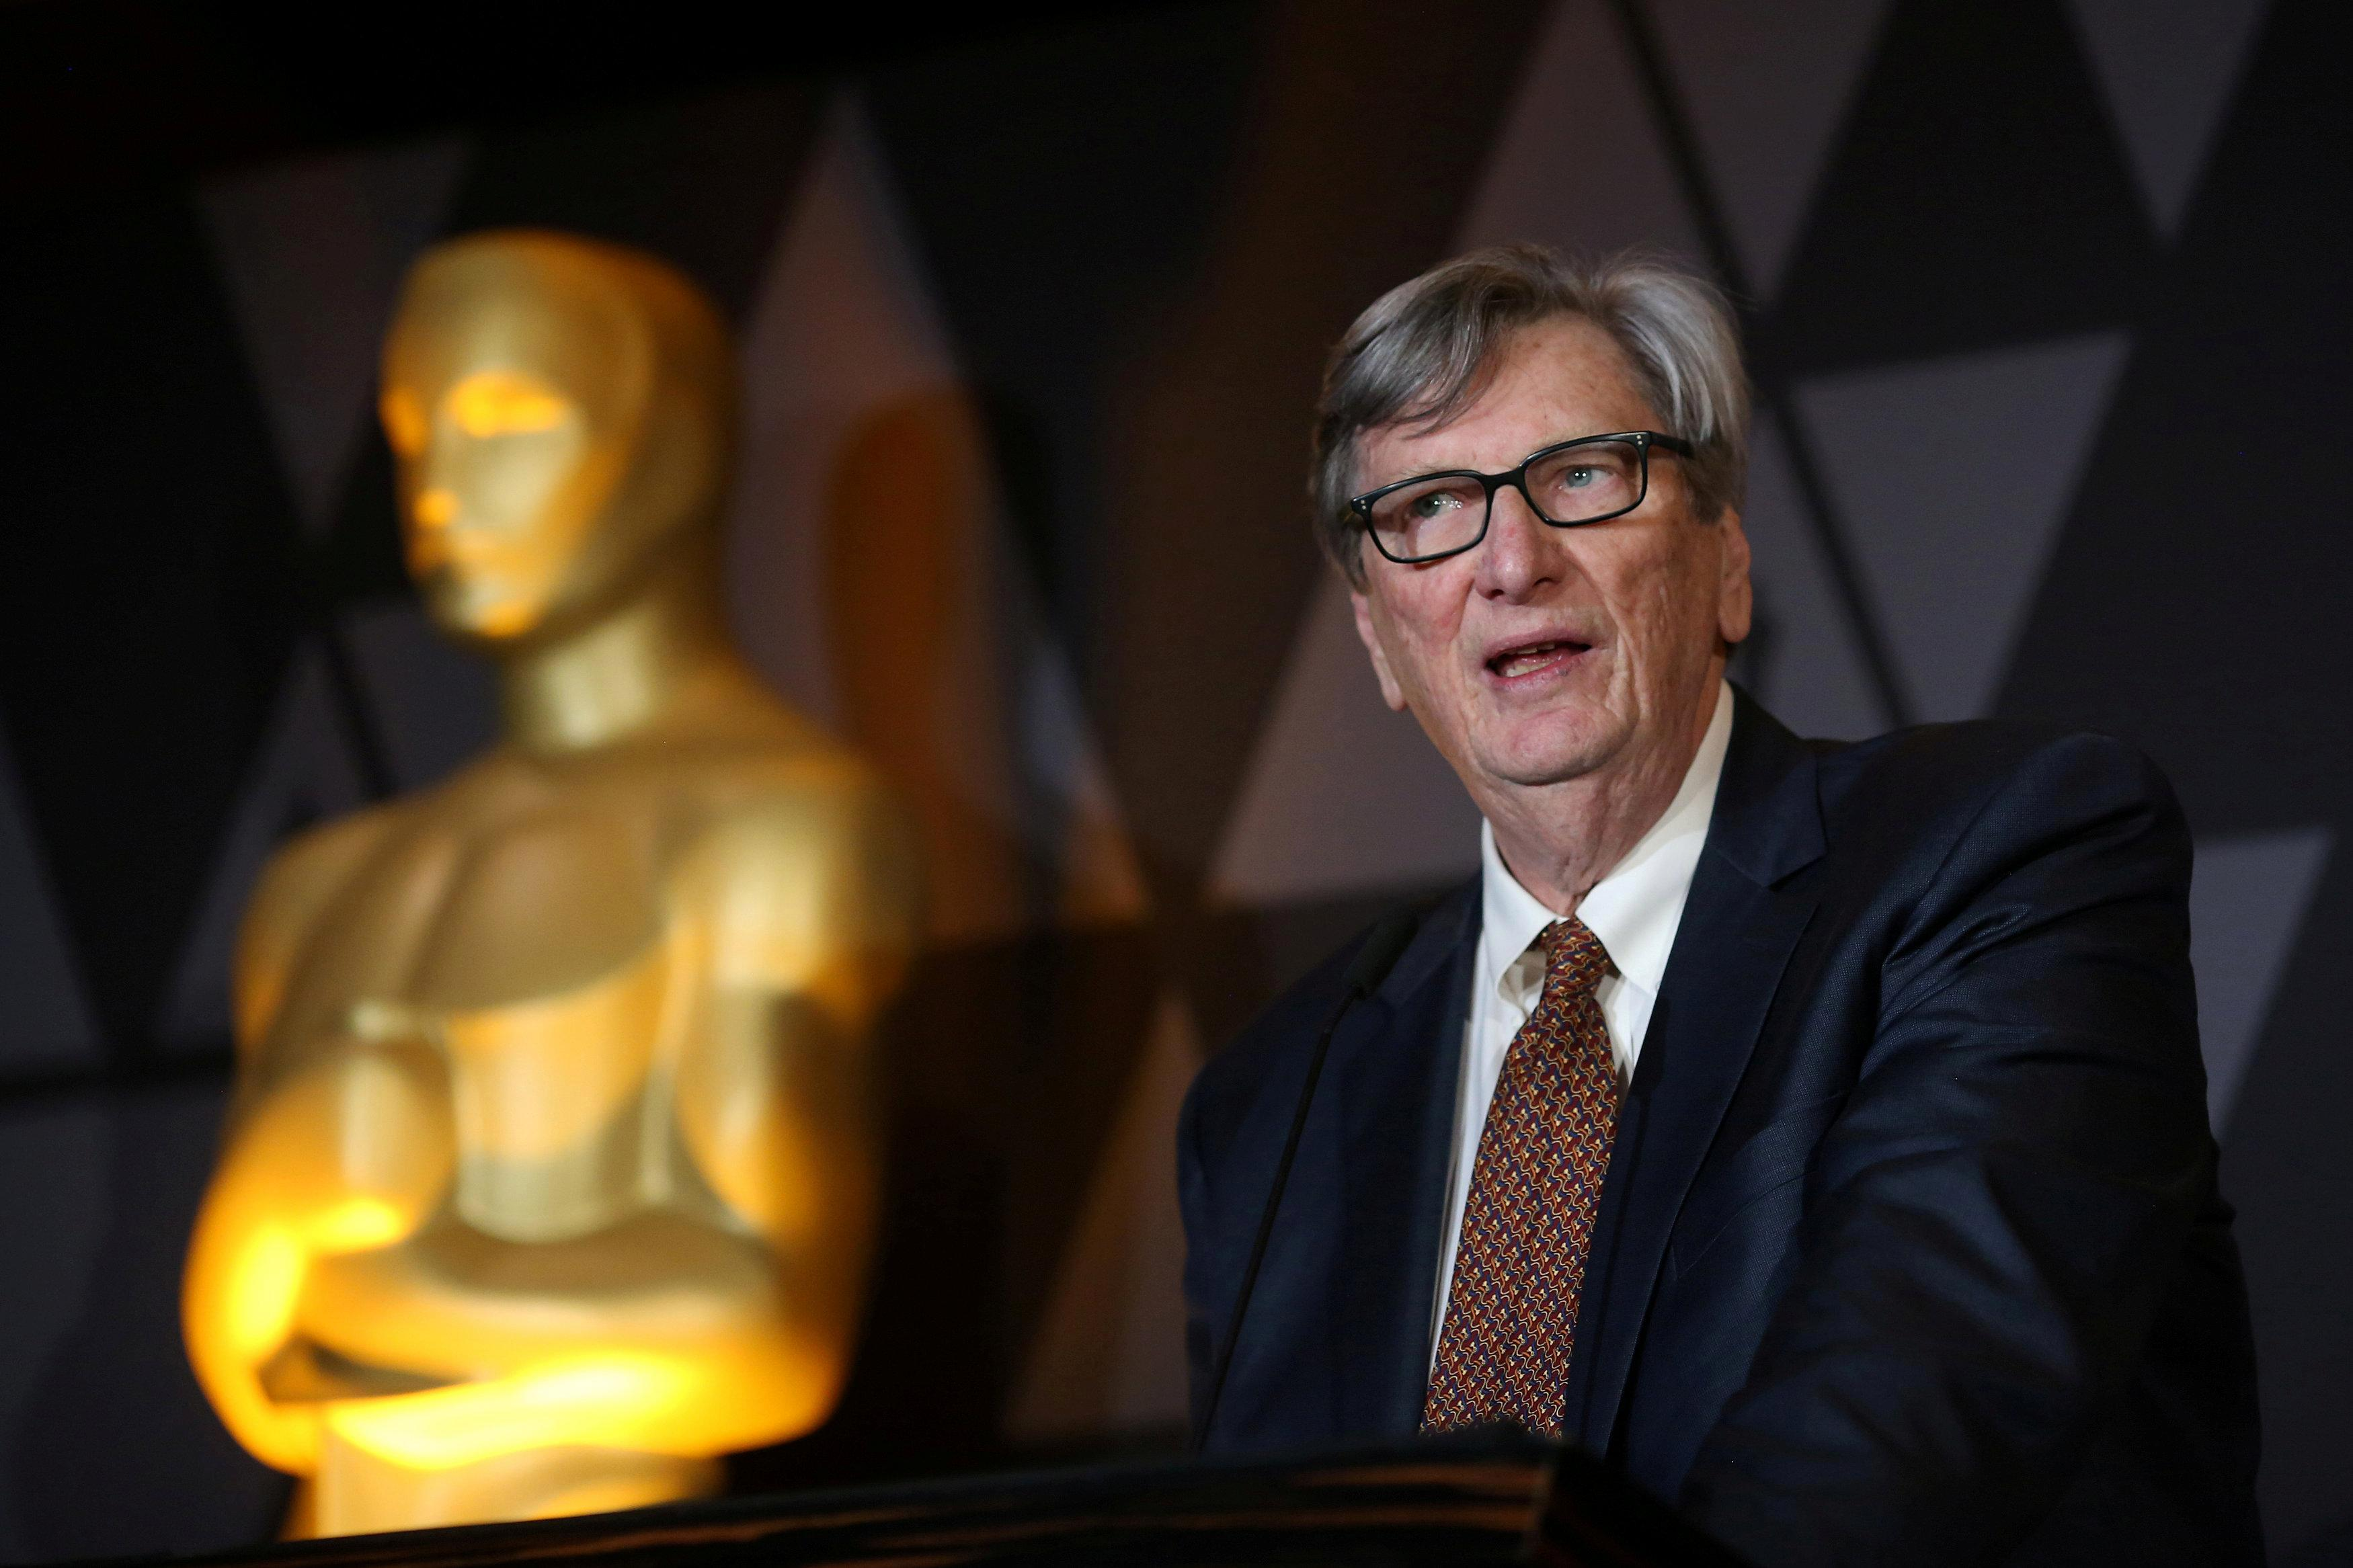 Oscars Academy chief John Bailey 'faces sexual harassment allegations'